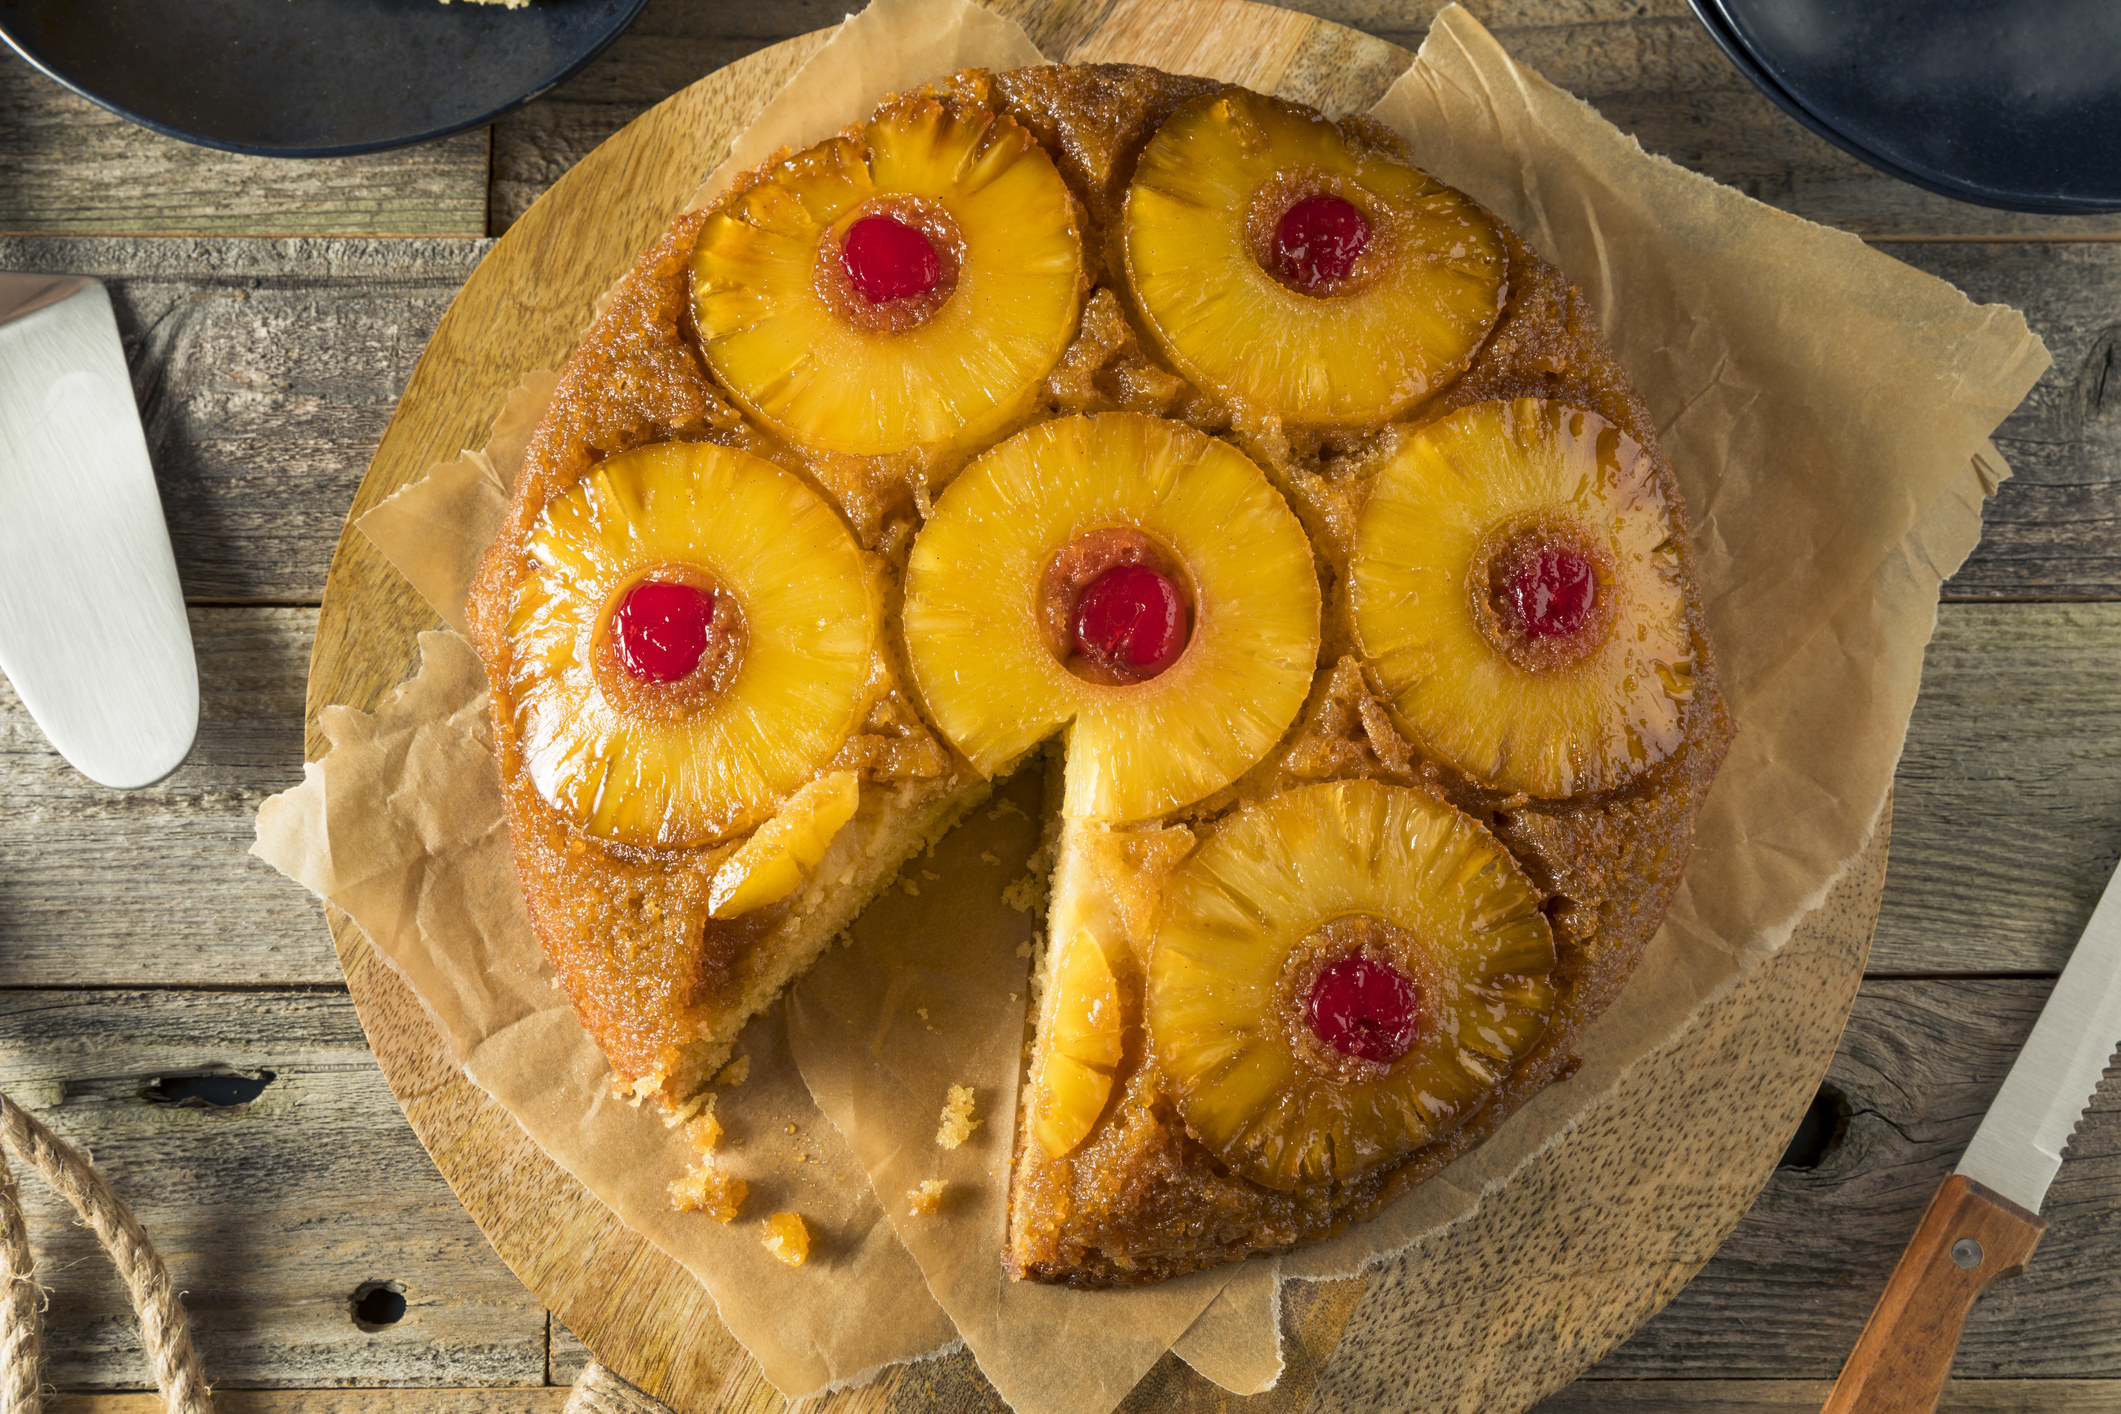 A cake with a slice taken out of it that has pineapple rings on top and cherries in the middle of the pineapple rings